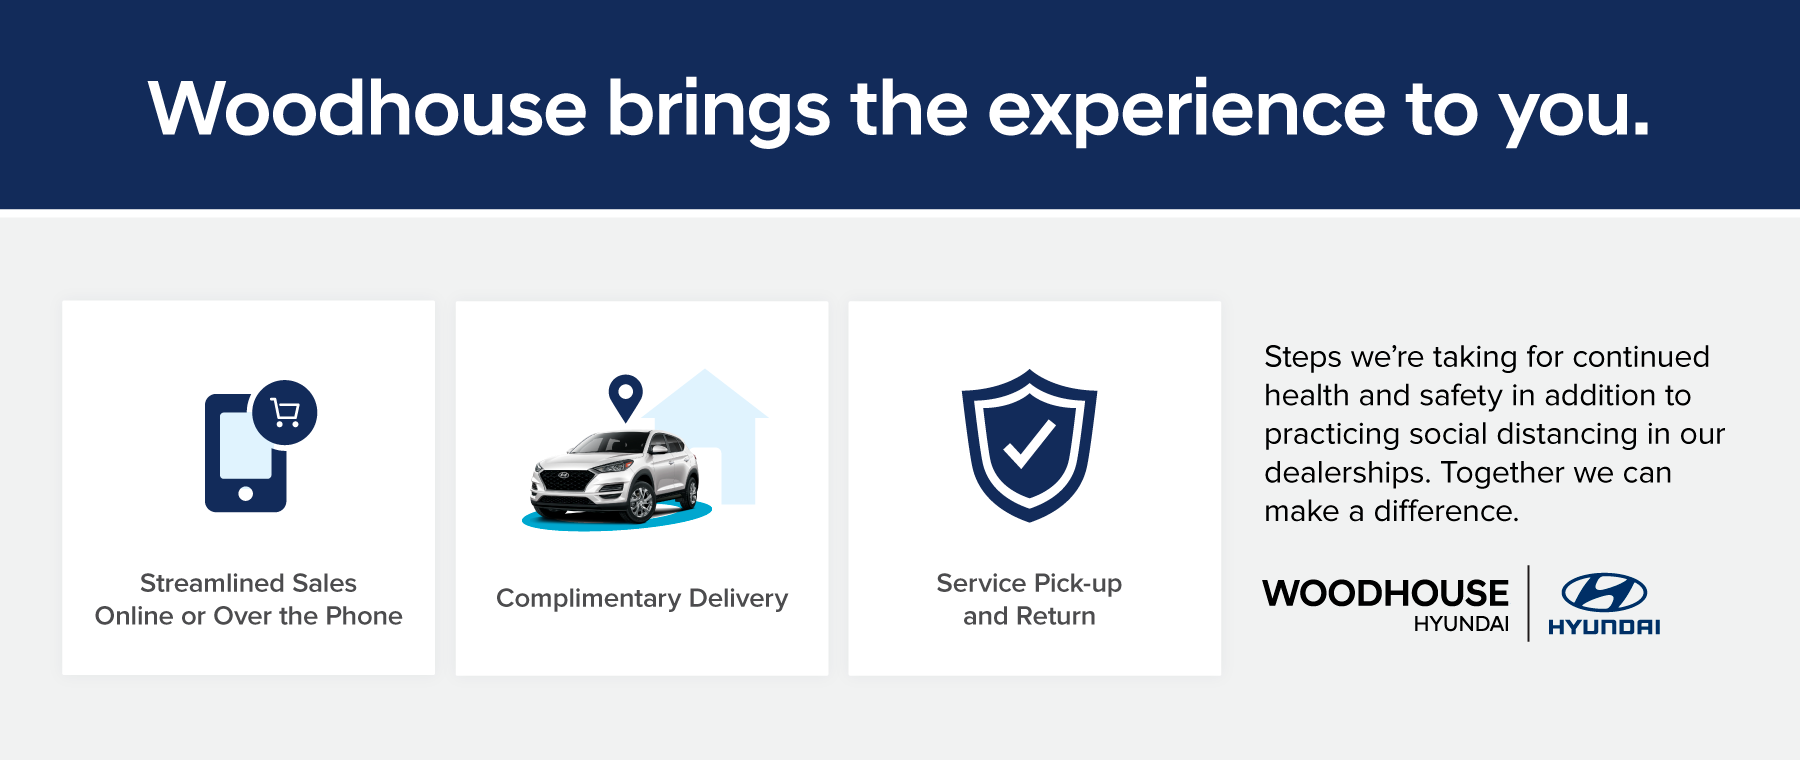 Woodhouse brings the experience to you